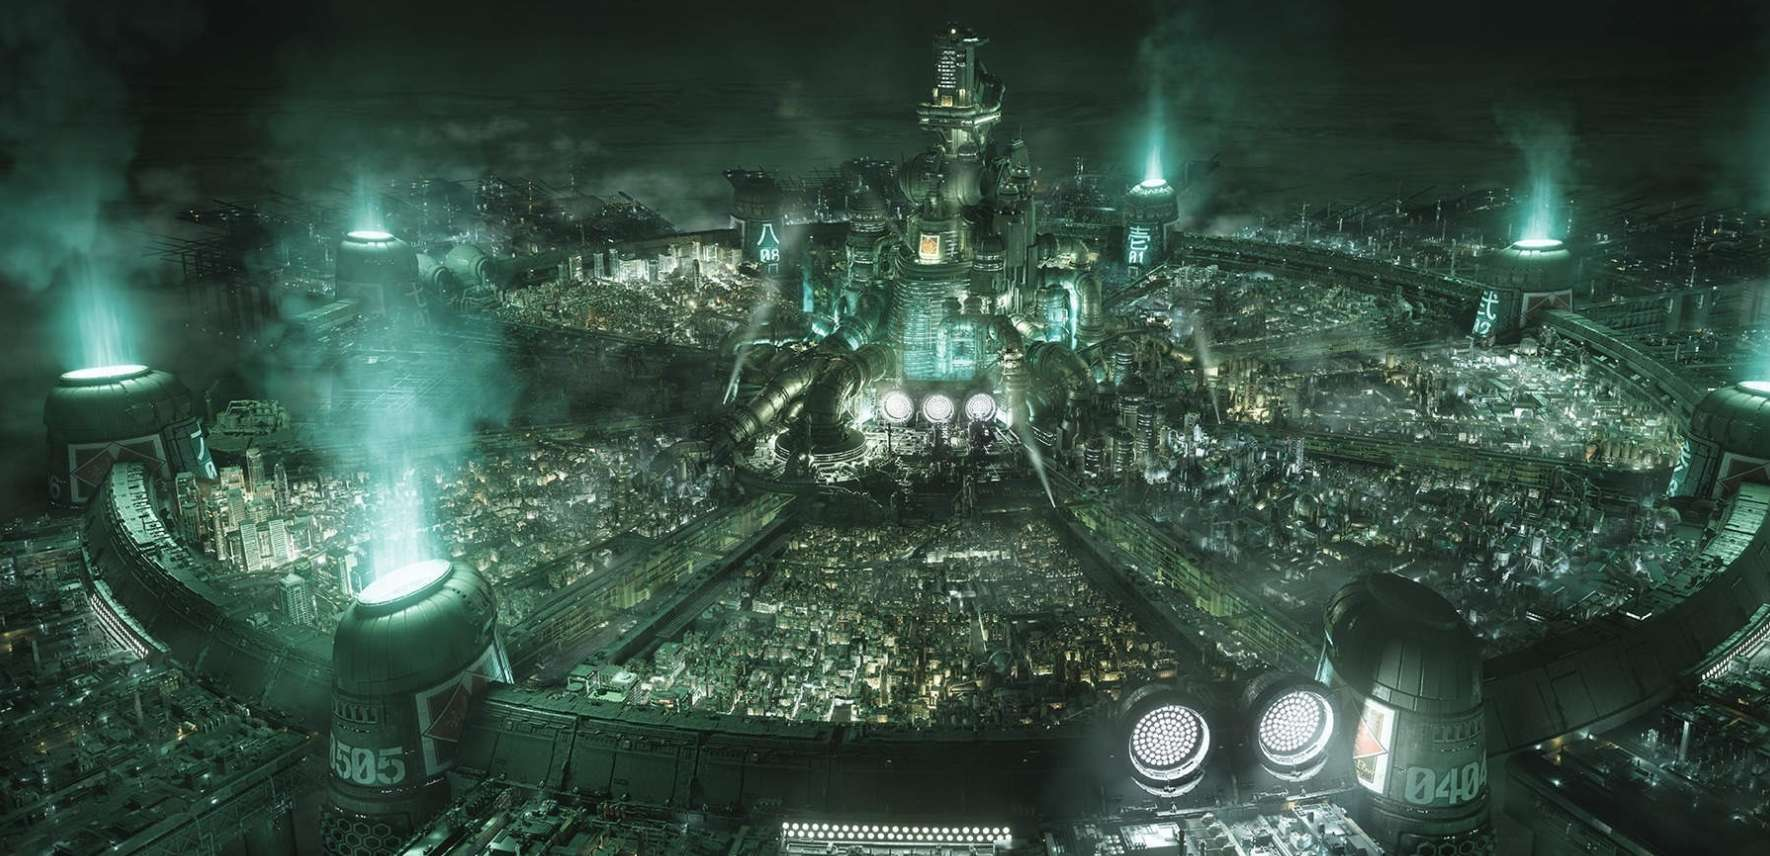 You Can Add A Final Fantasy 7 Remake Background To Your Next Zoom Video Conference For Free